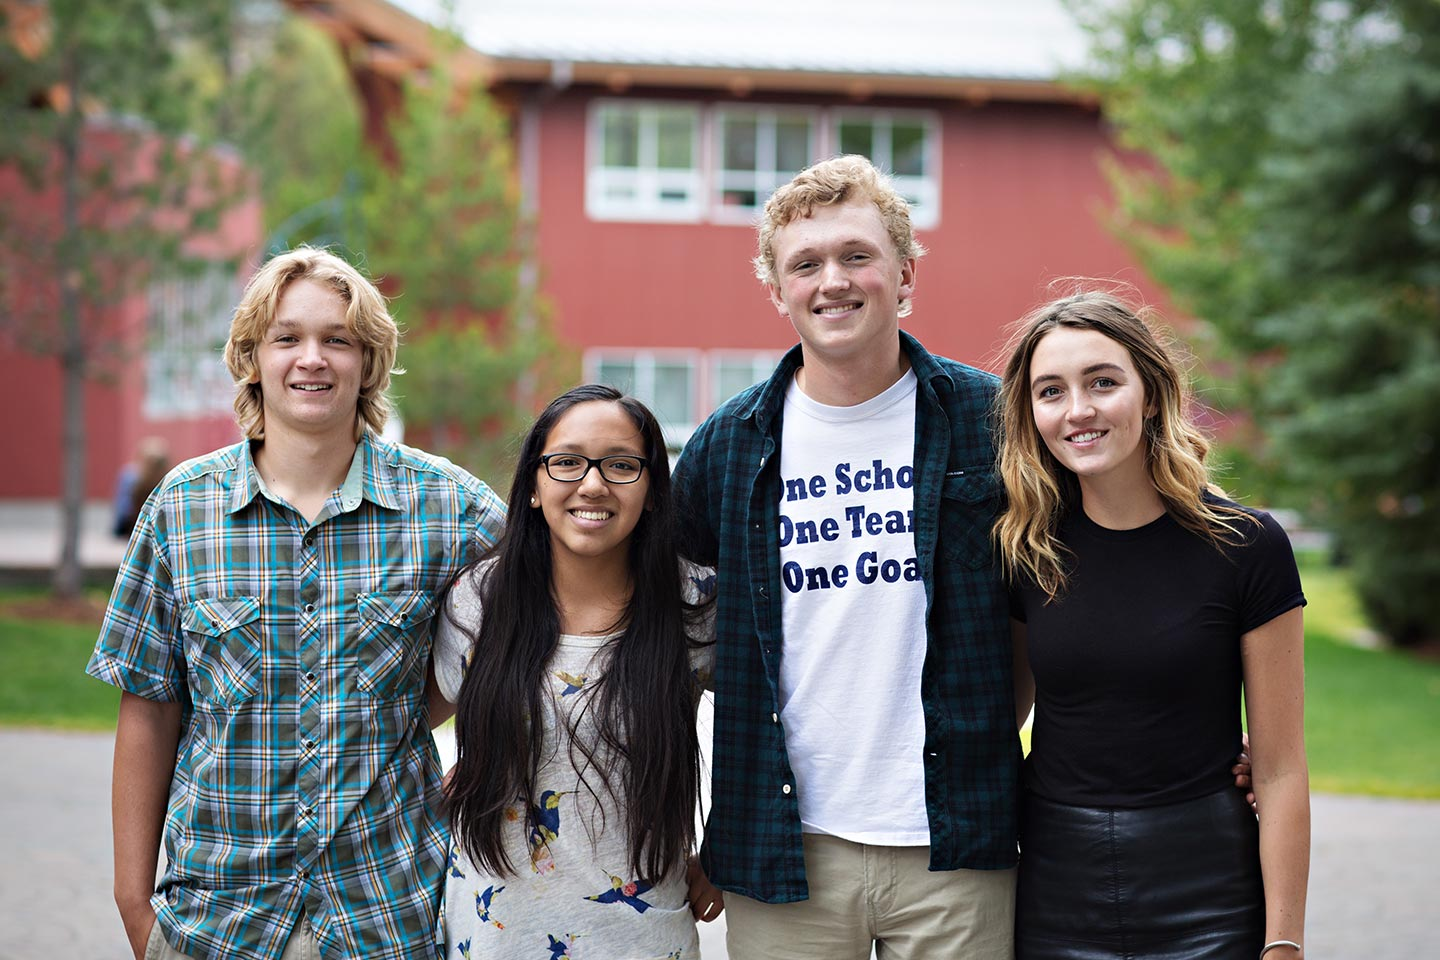 Four students smiling in front of a red campus building